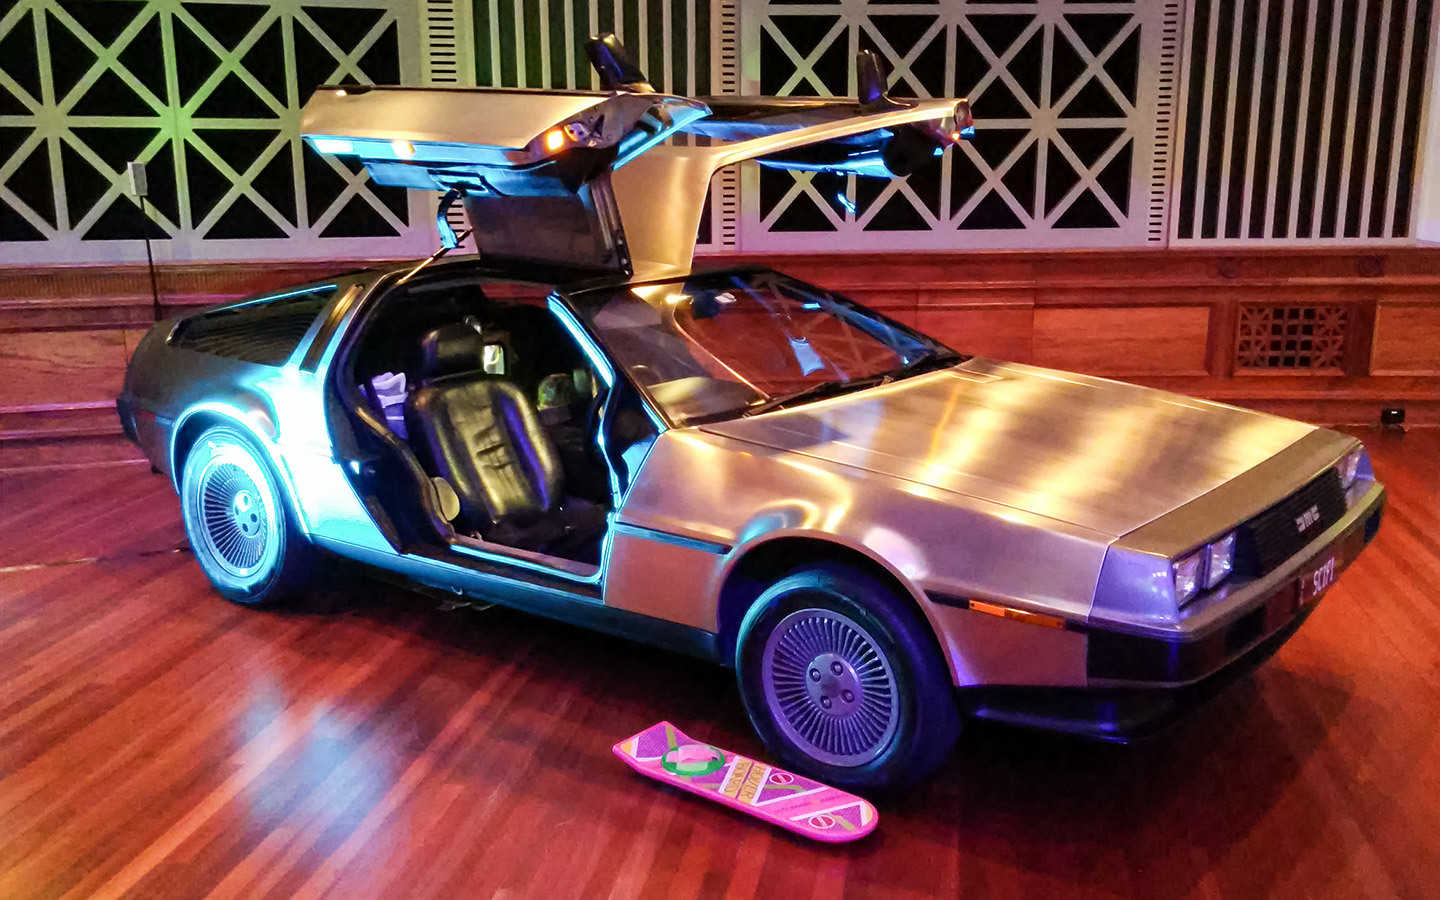 (My DeLorean in all its glory inside City Hall)